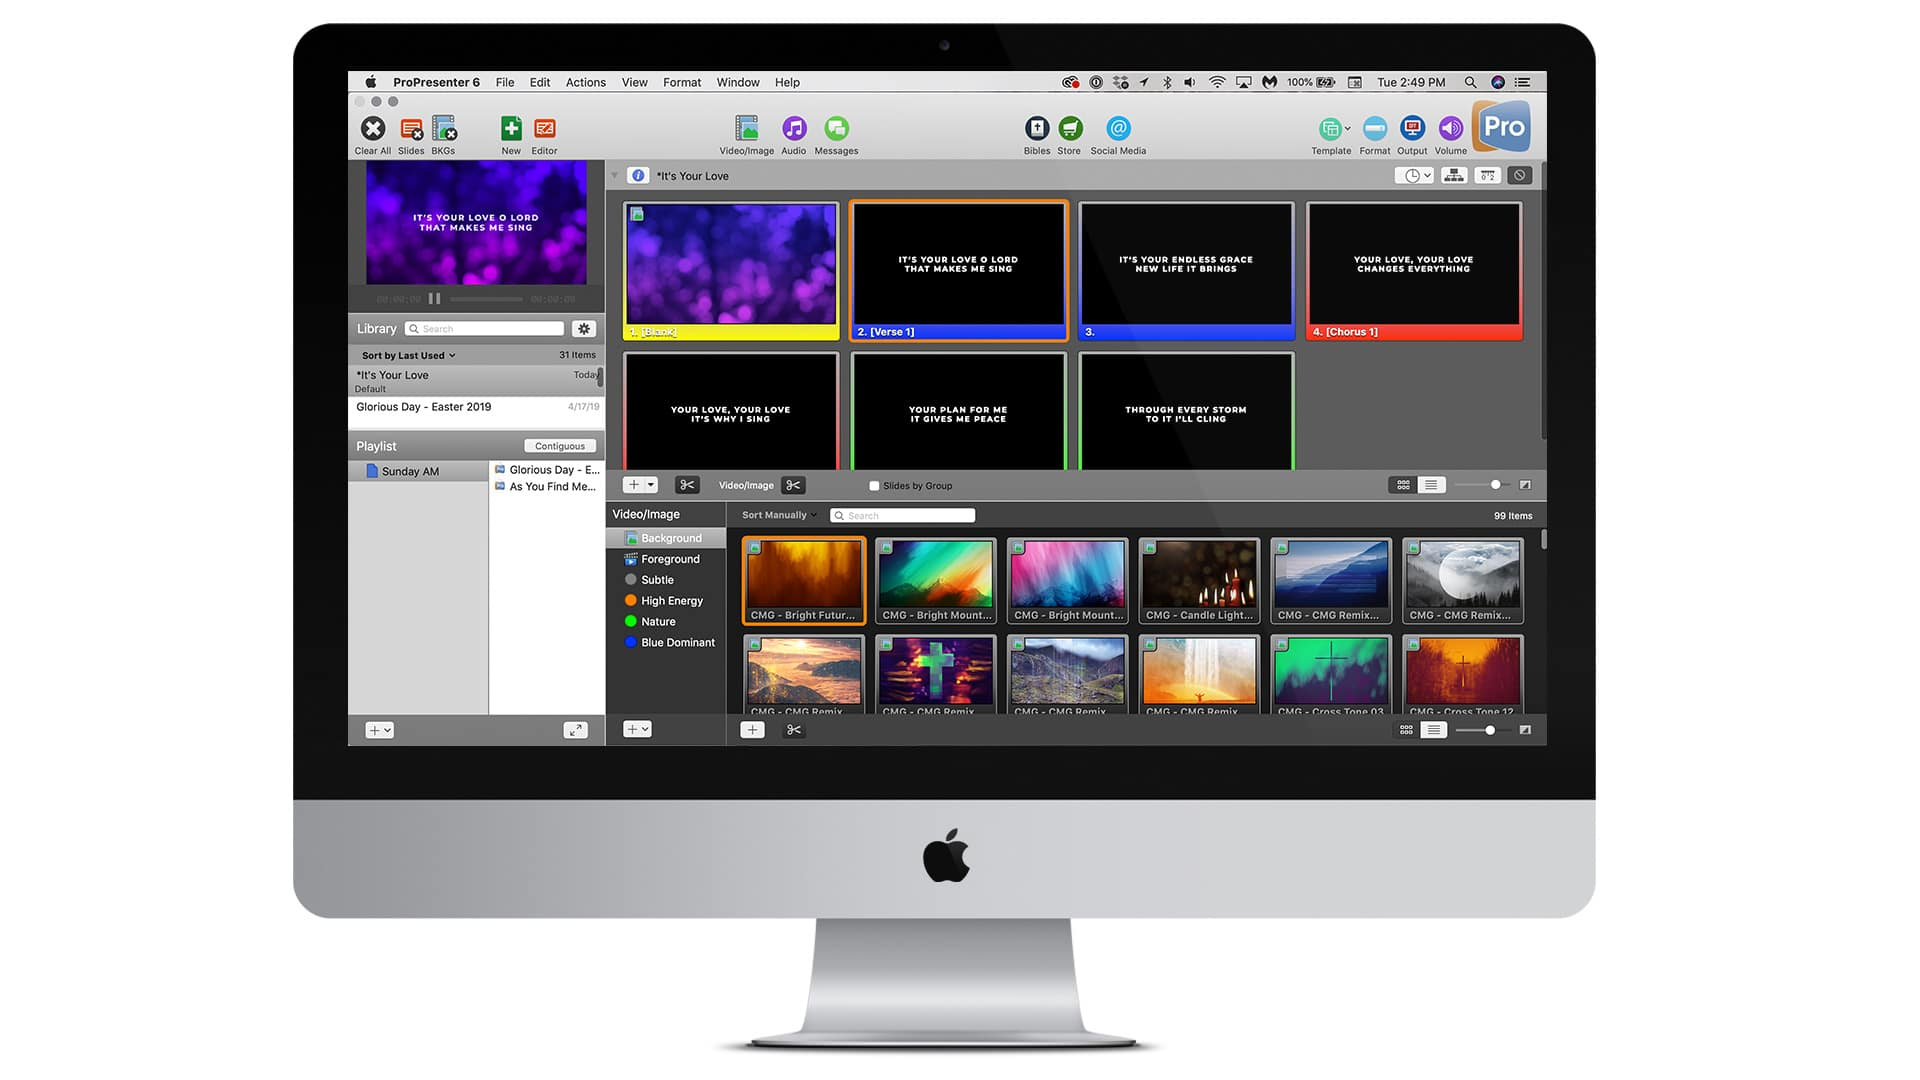 99 Free Worship Backgrounds For ProPresenter – CMG | Church